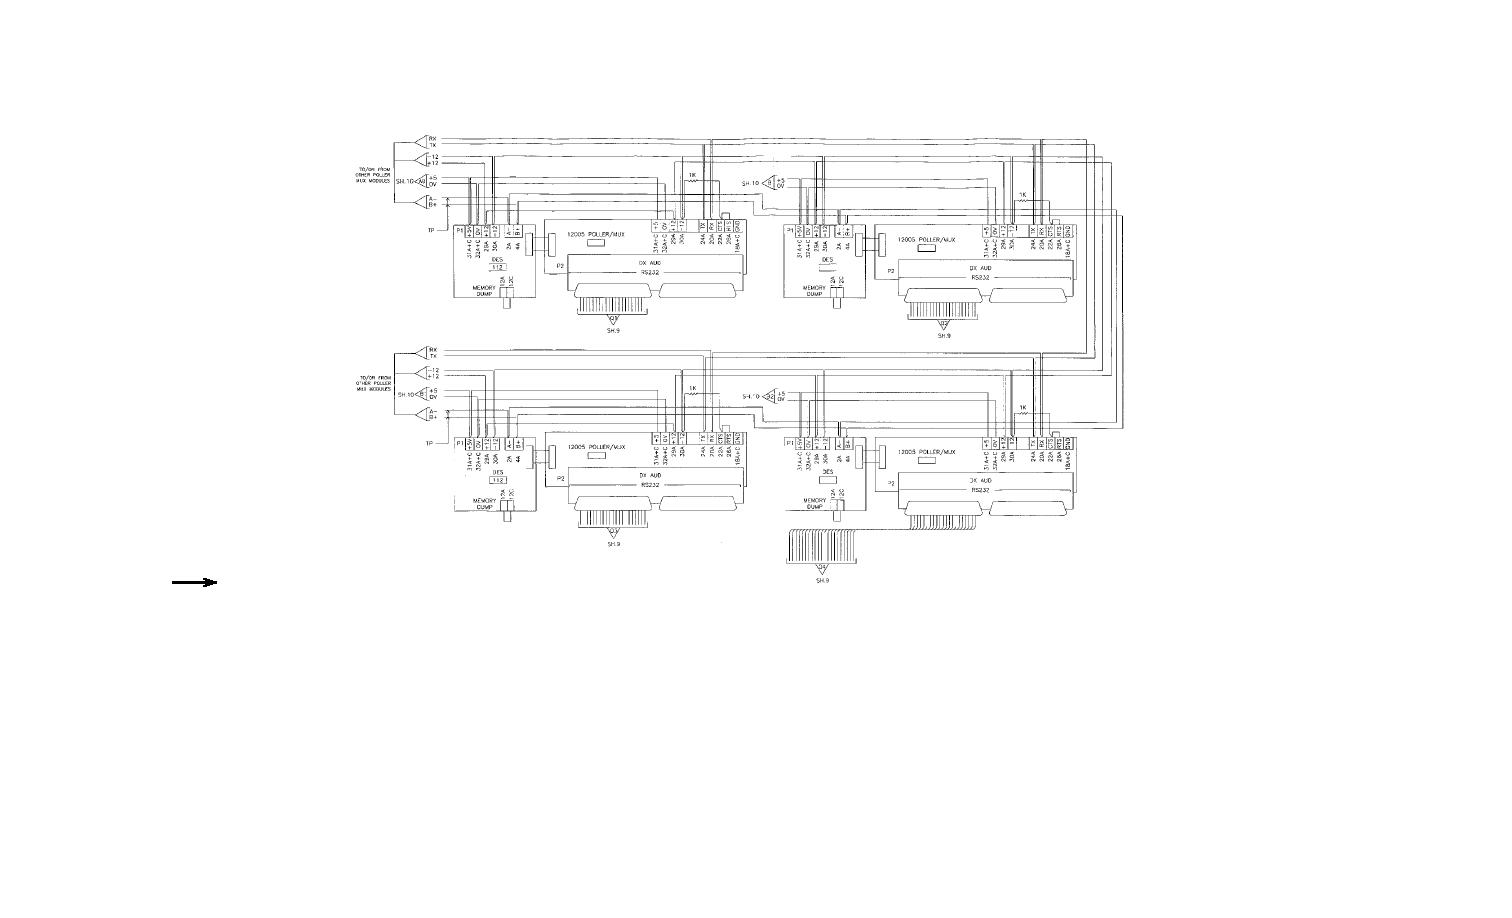 FO-2. PMC Functional Wiring Block Diagram (Sheet 6 of 11)